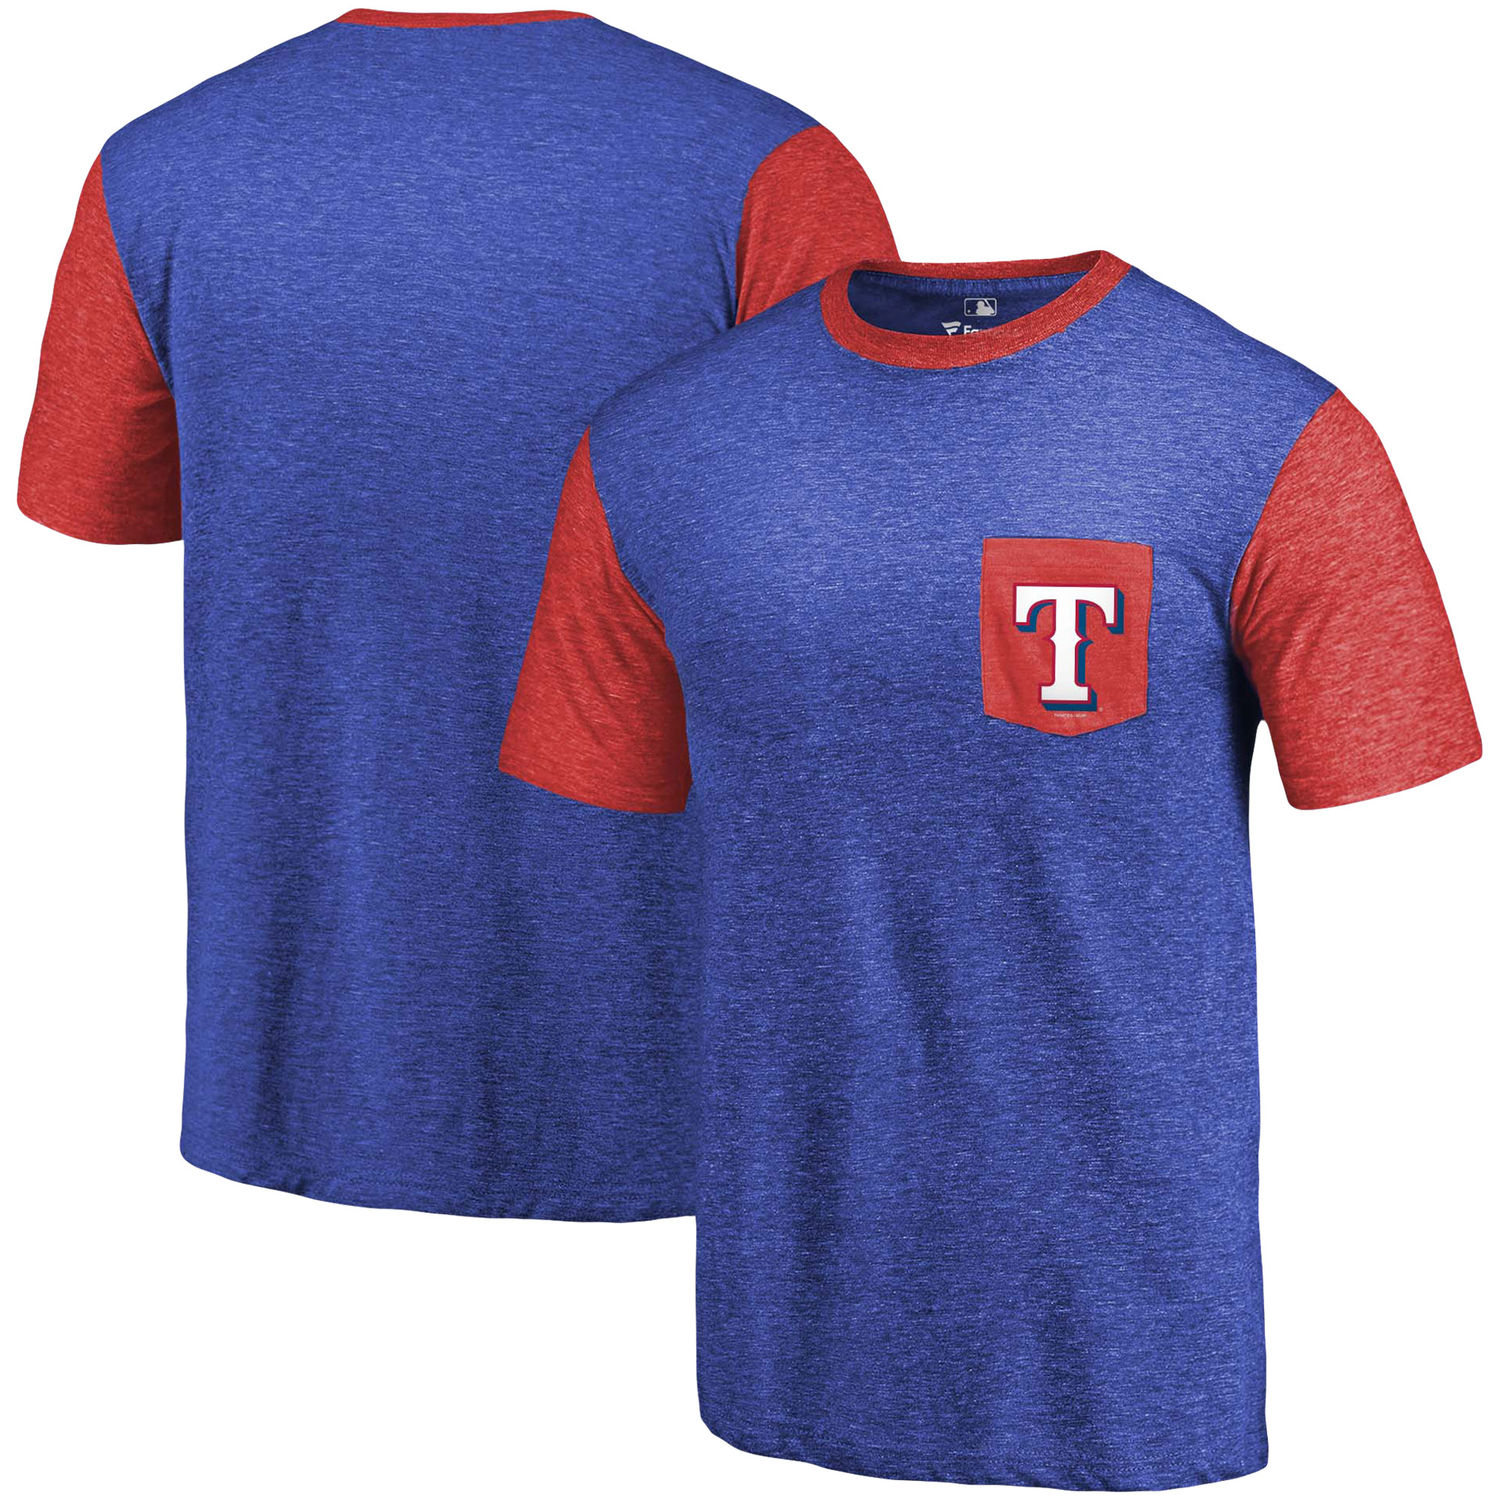 Men's Texas Rangers Fanatics Branded Royal-Red Tri-Blend Refresh Pocket T-Shirt